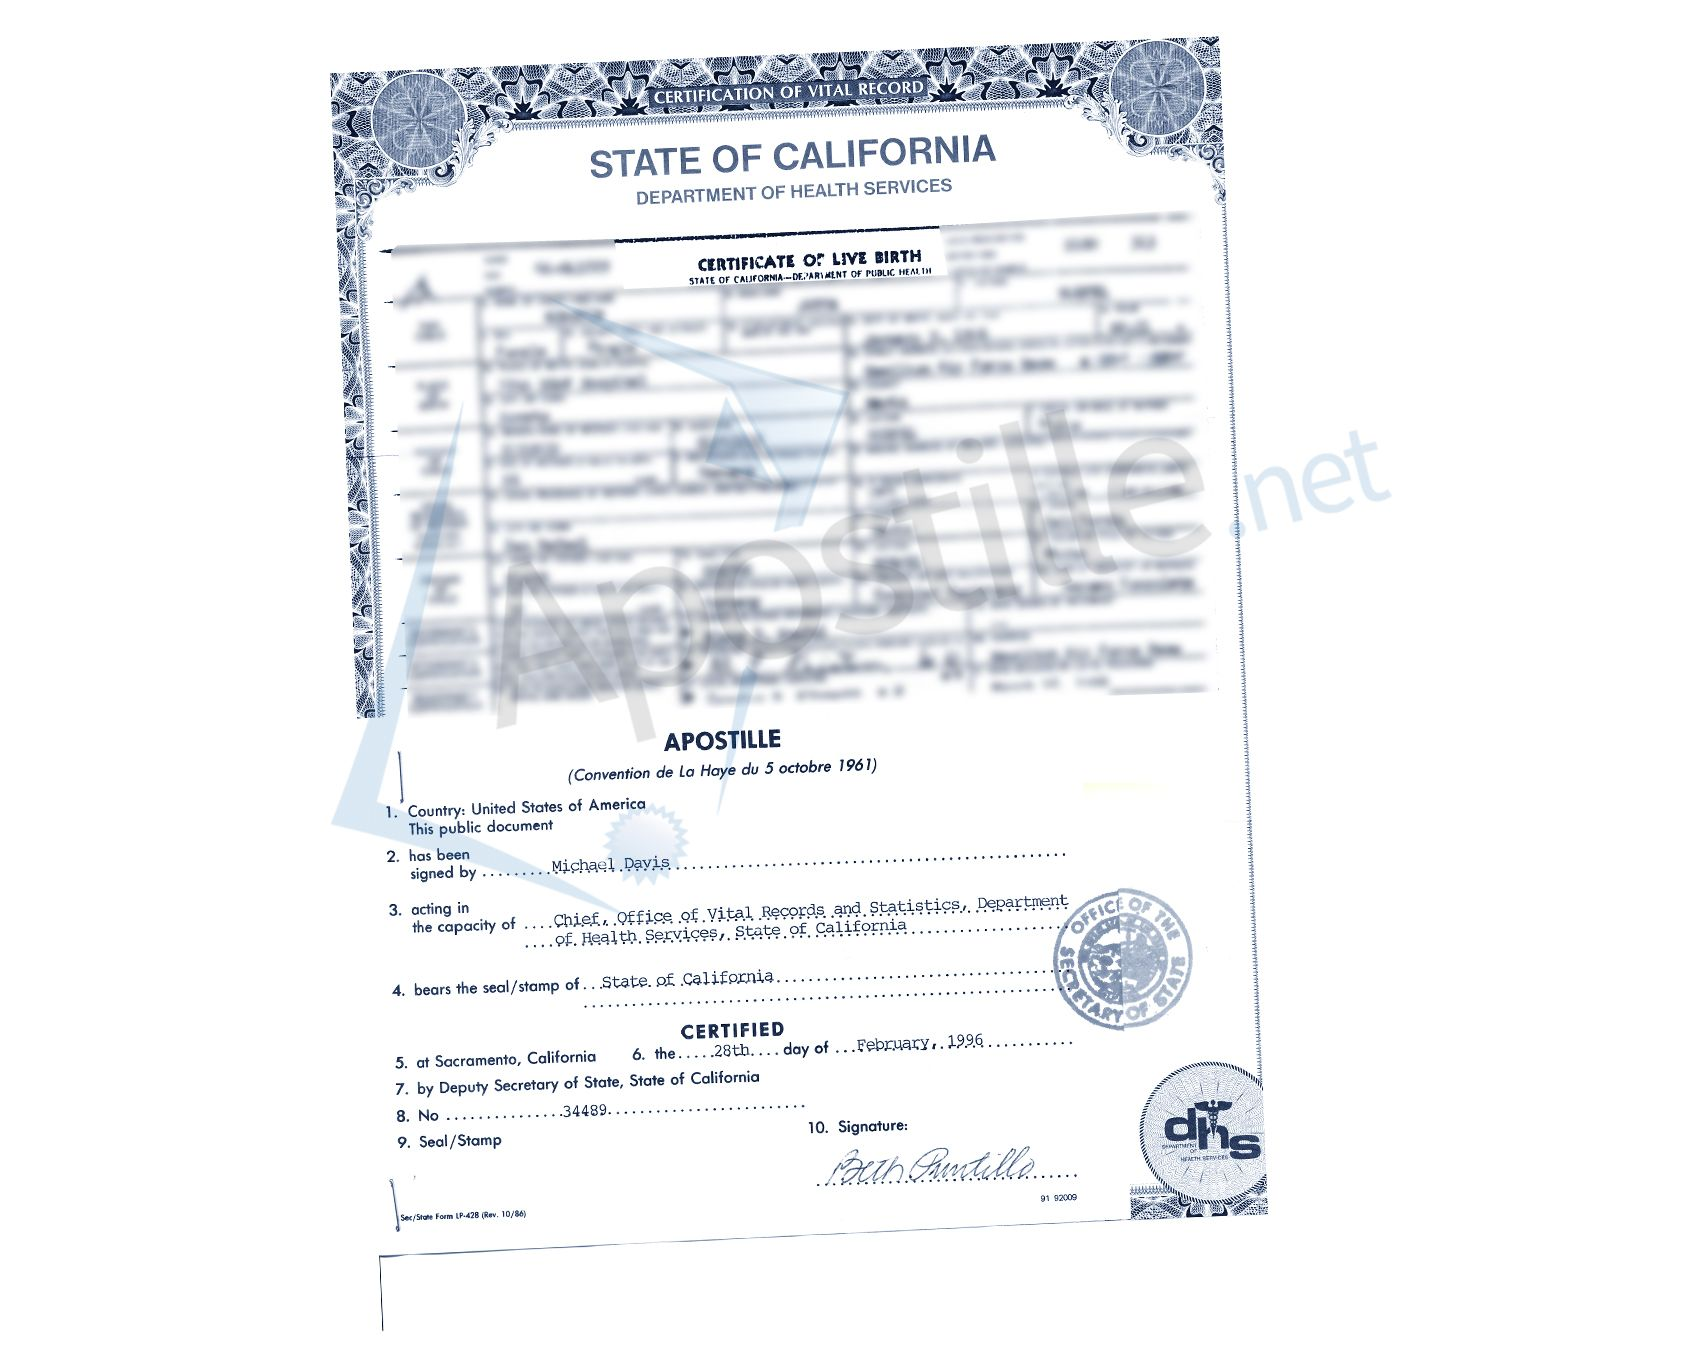 Sacramento certificate of live birth ready for apostille state sacramento certificate of live birth ready for apostille state of california sample apostille pinterest certificate and birth 1betcityfo Images